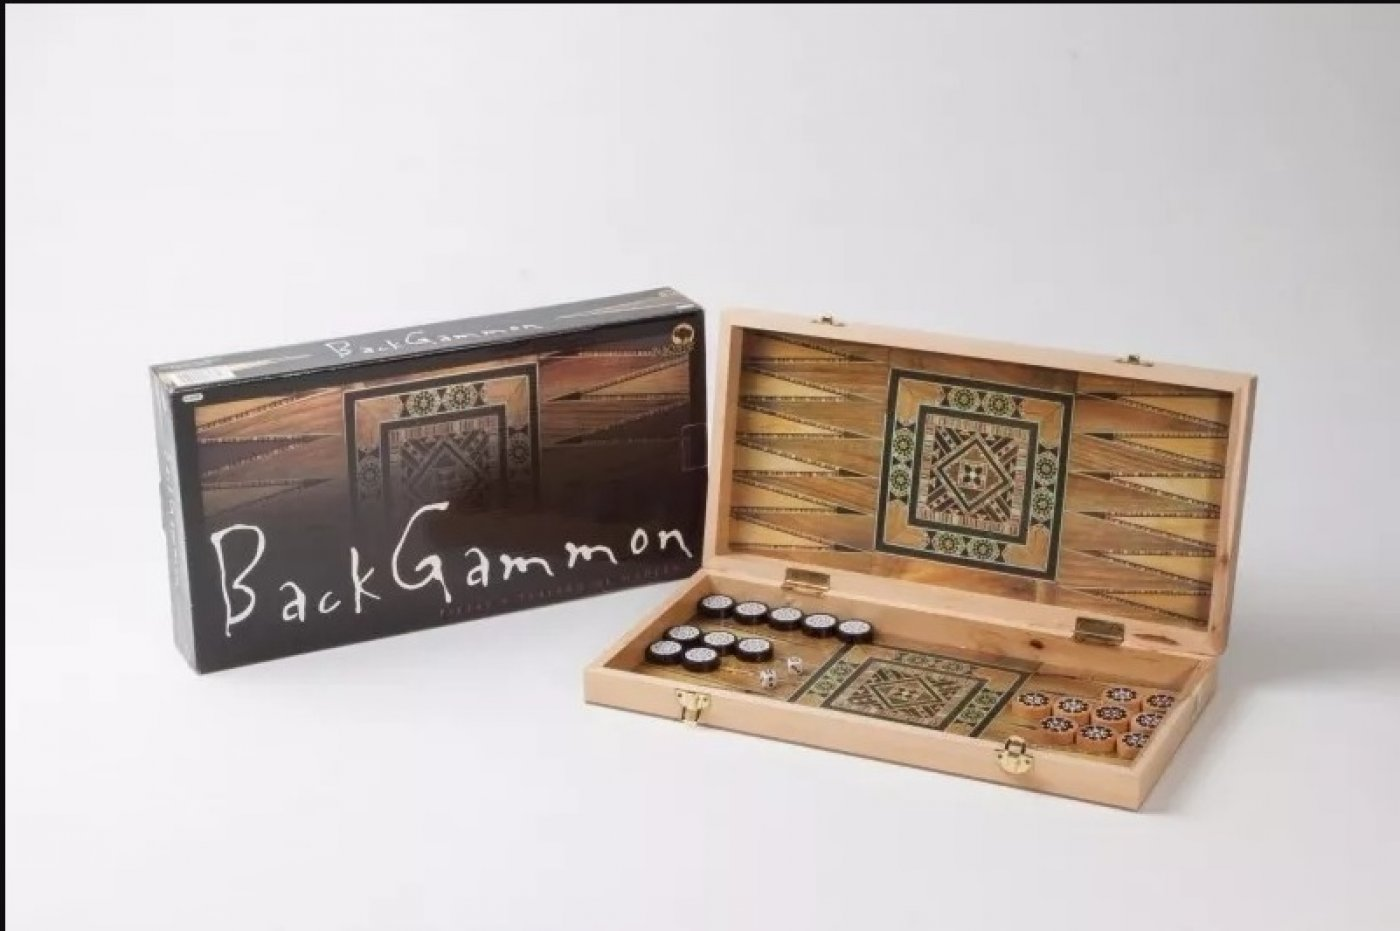 Damas-Backgammon 2 en 1 Bisonte